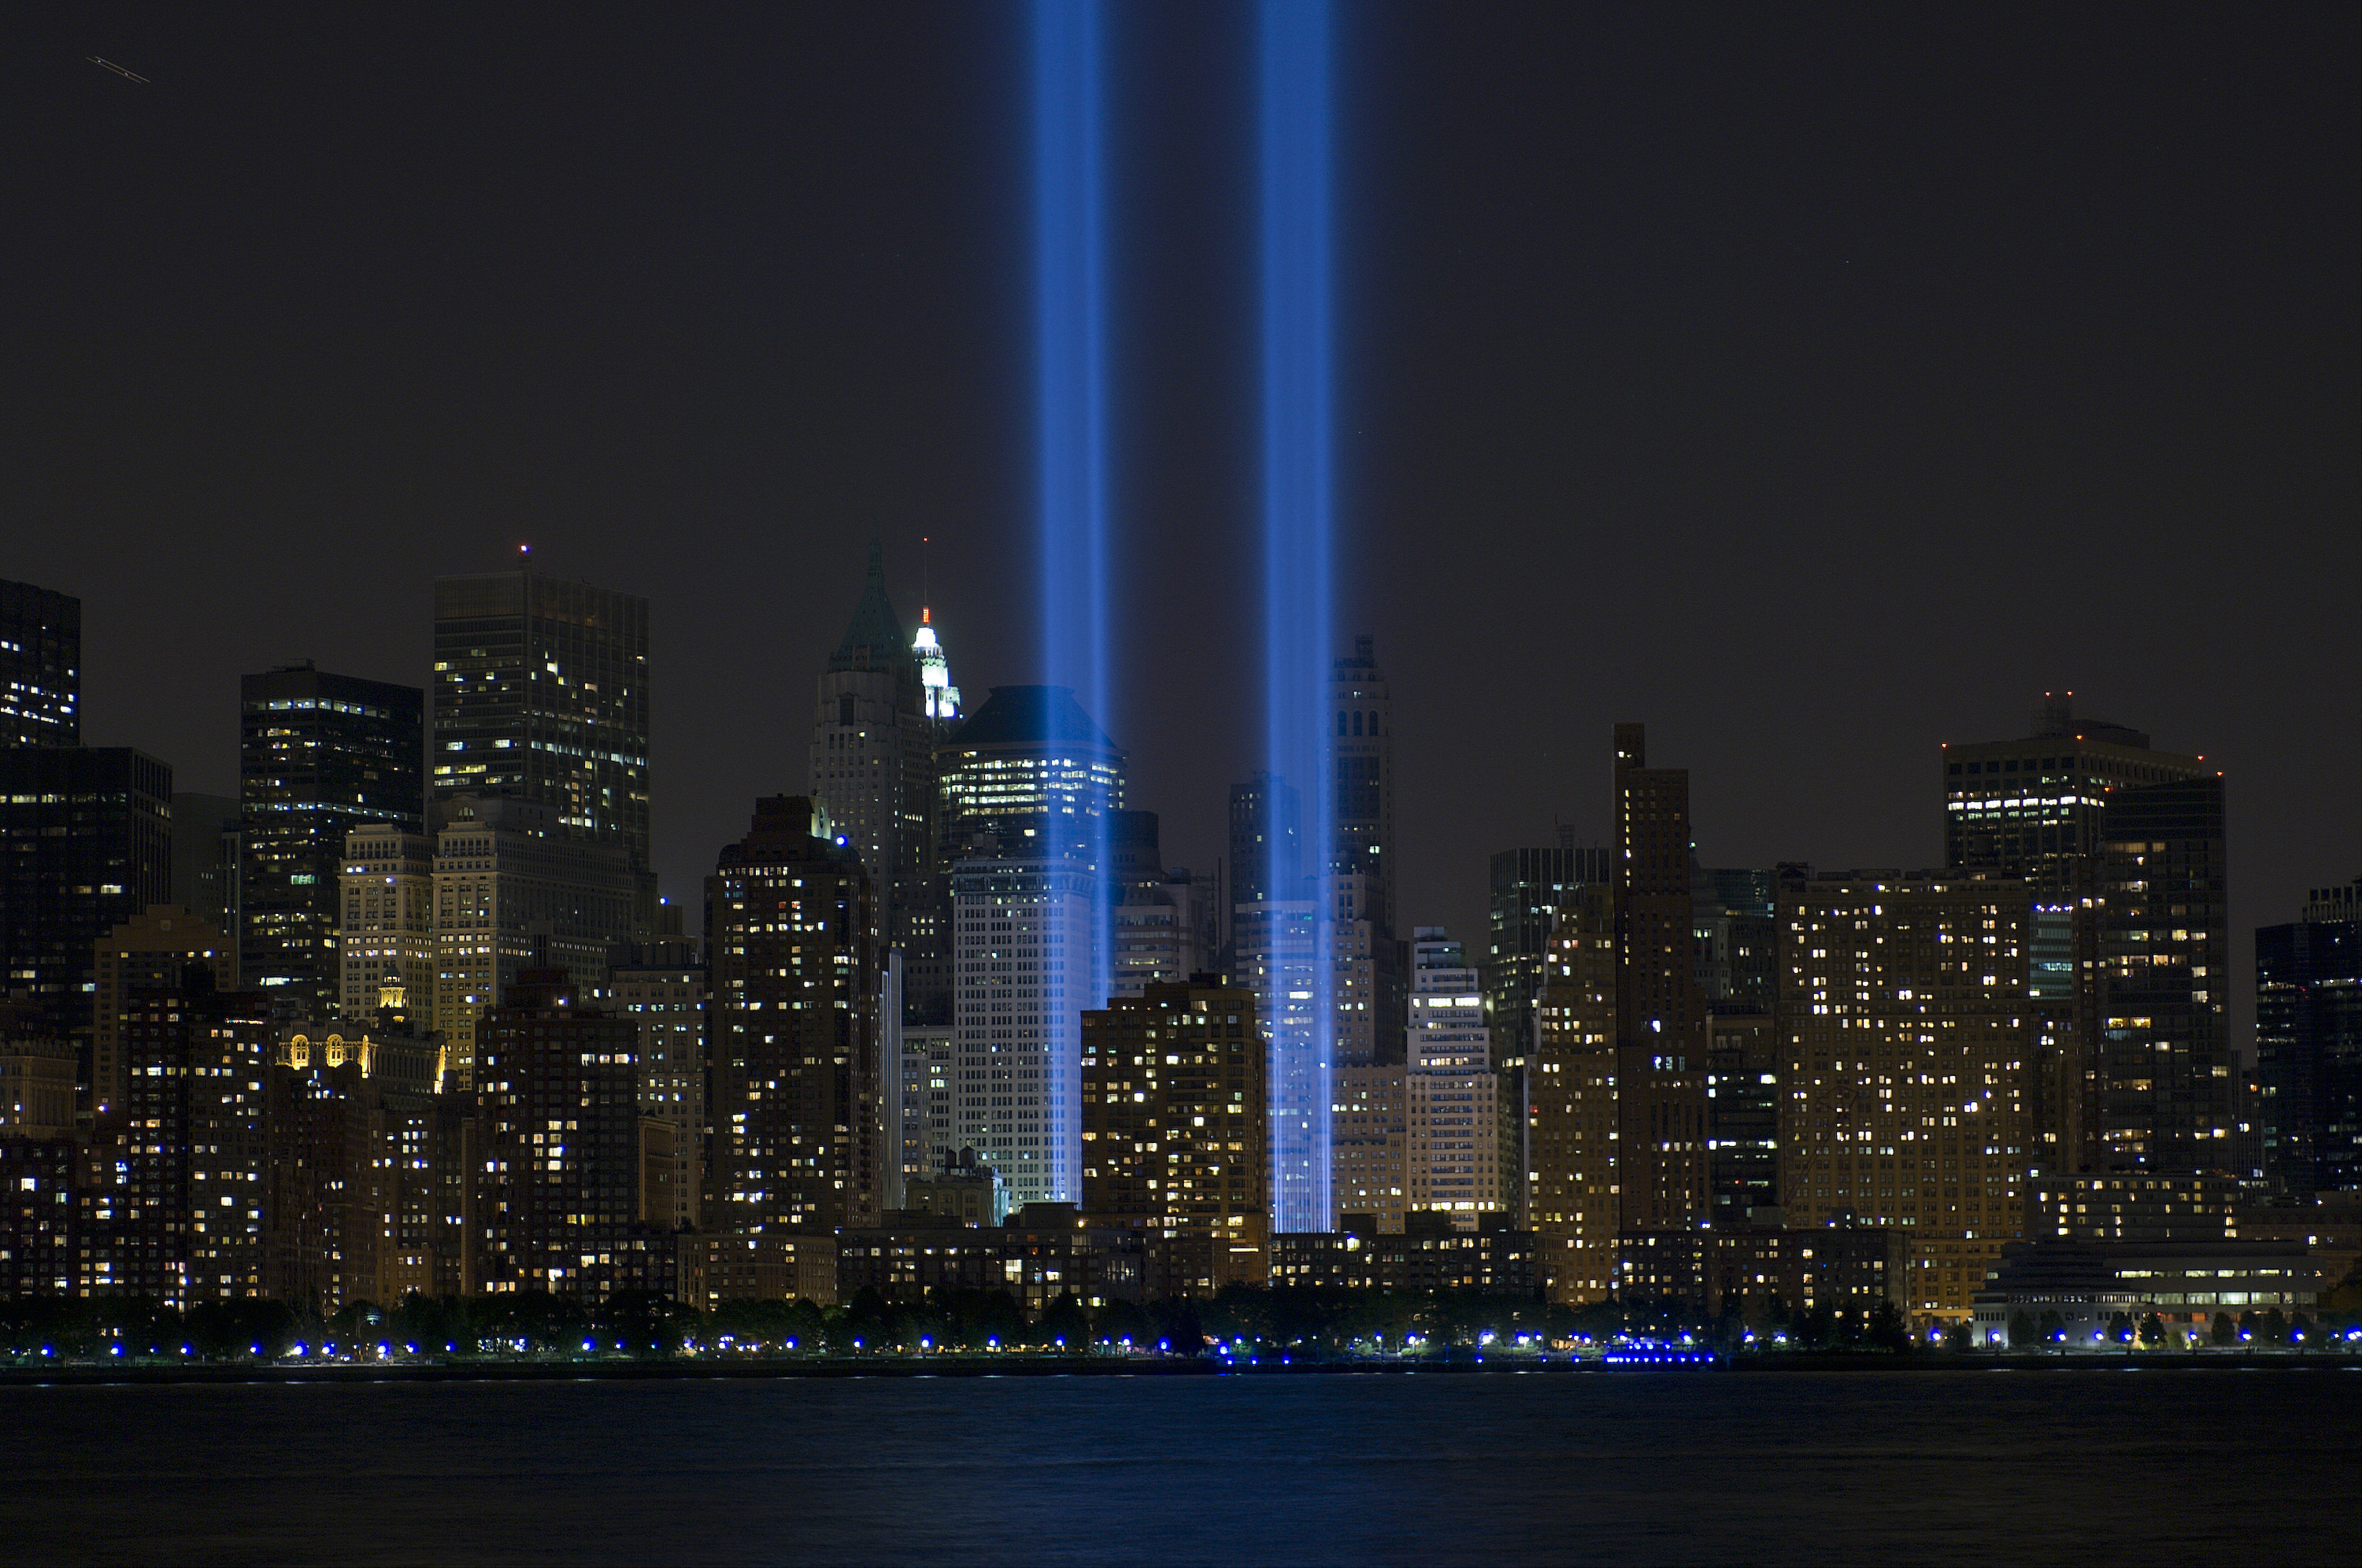 The 9/11 memorial lights shining where the Twin Towers used to stand